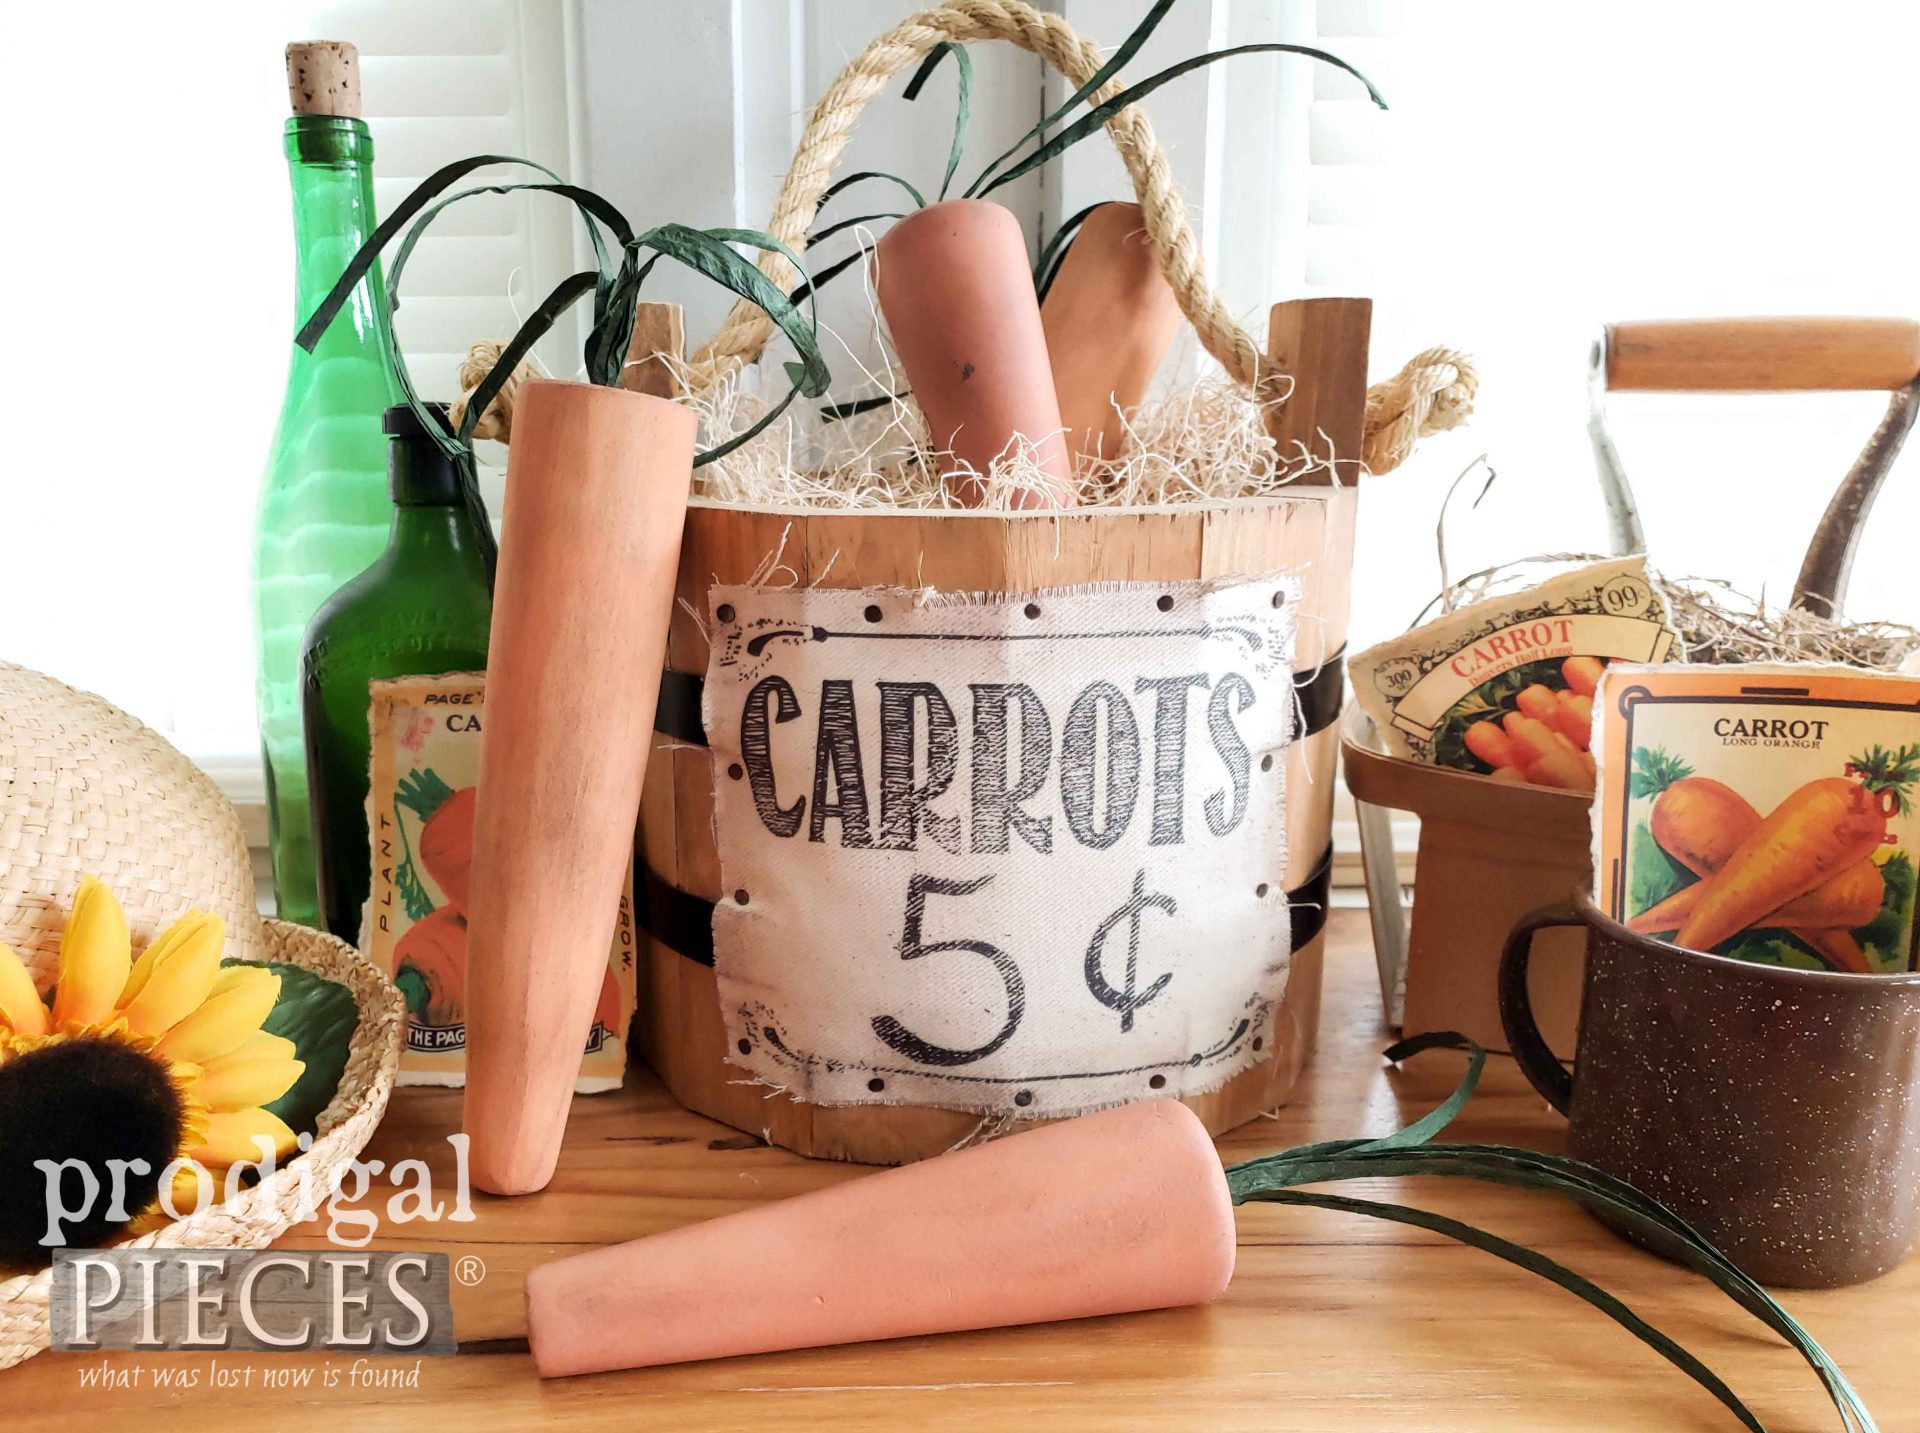 DIY Rustic Carrots for Farmhouse Spring Decor by Larissa of Prodigal Pieces | prodigalpieces.com #prodigalpieces #handmade #spring #diy #crafts #farmhouse